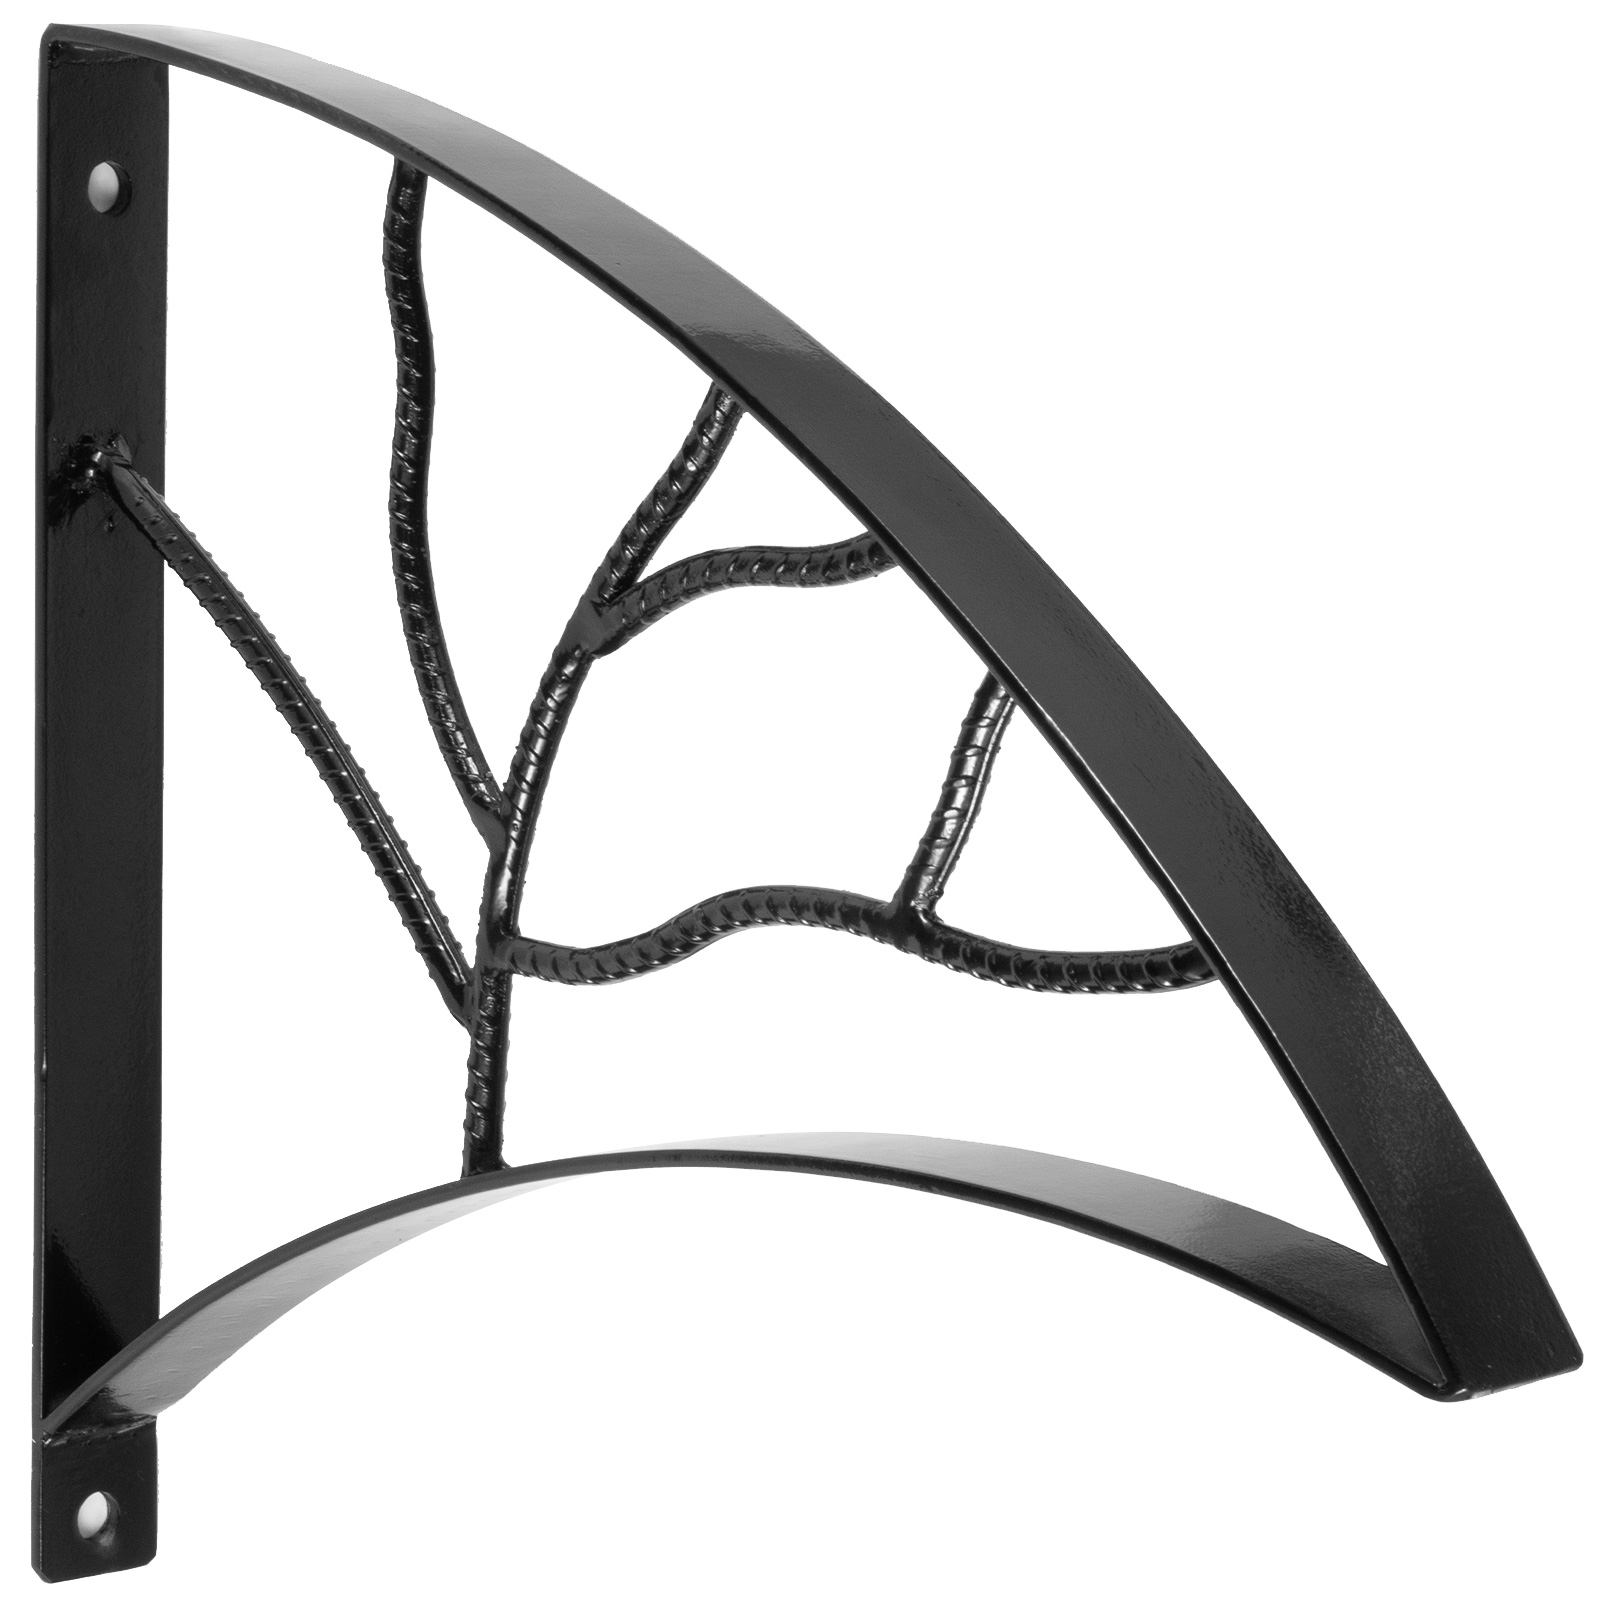 Handrails-for-Outdoor-Step-Wrought-Iron-Handrail-20-034-Length-Porch-Deck-Railing thumbnail 48